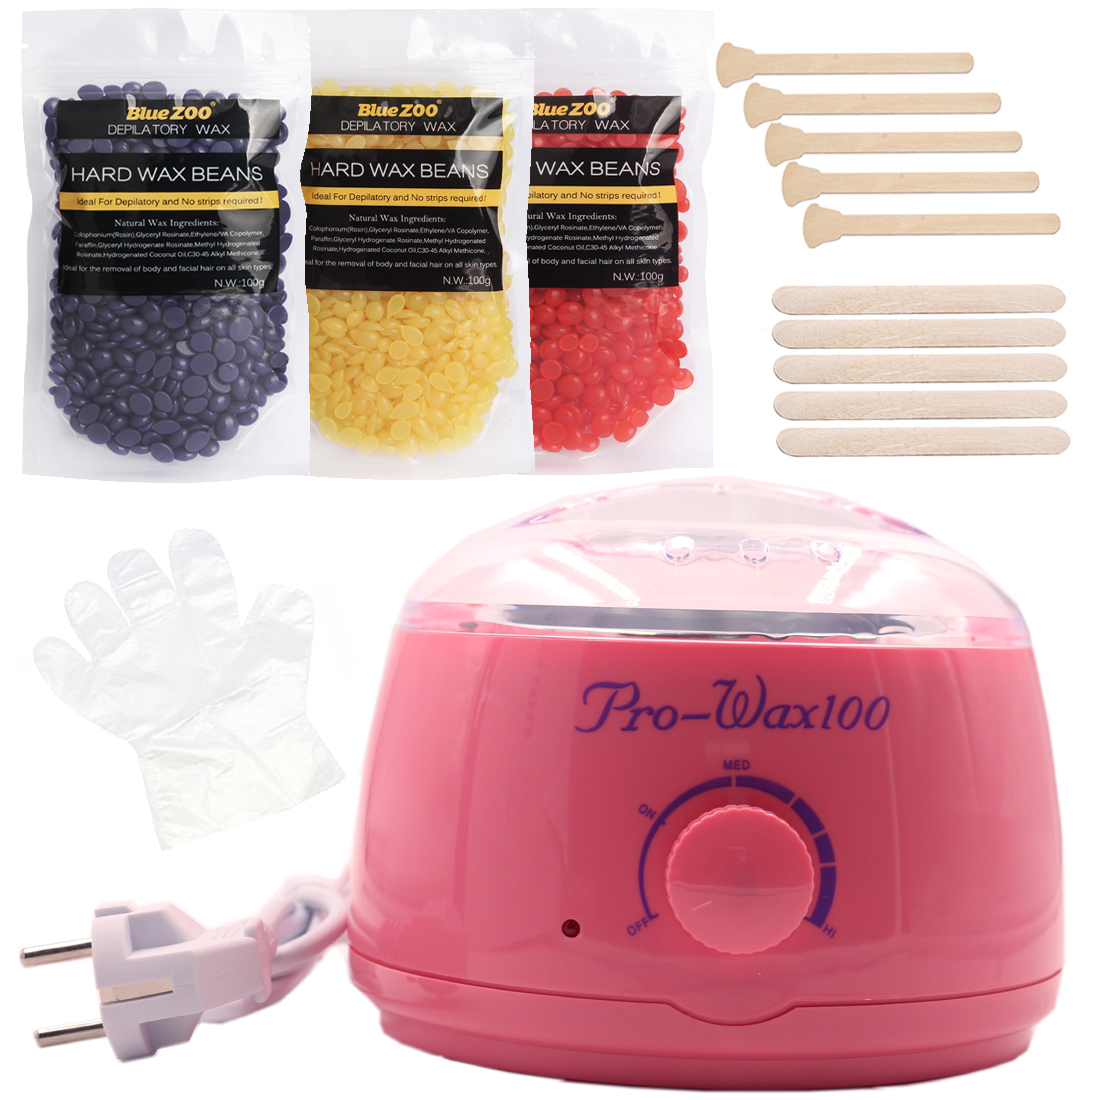 Red Wax Machine Hard Wax Beans Body Waxing Hair Removal Set 3 Bags Natural Beans For Depilation Bikini Depilatory No Strips depilatory wax warmer hard wax beans hair removal black wax machine 250g natural beans for beauty spa epilation